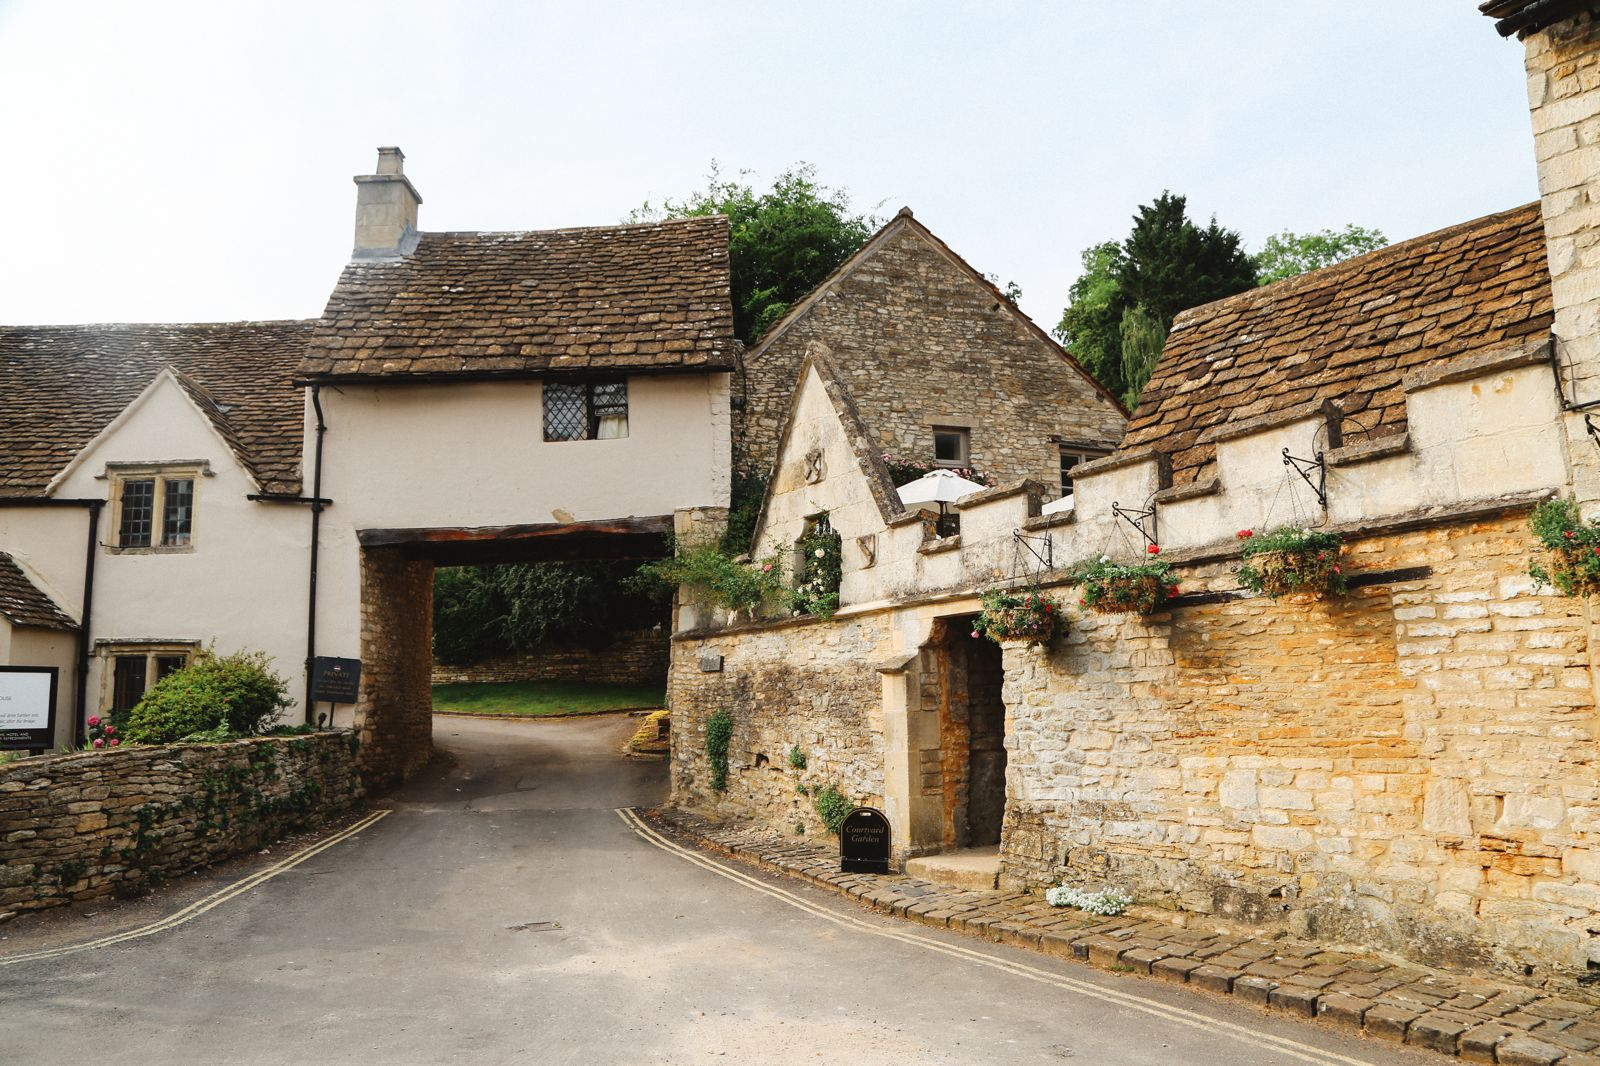 Exploring One Of England's Most Beautiful Villages - Castle Combe (36)